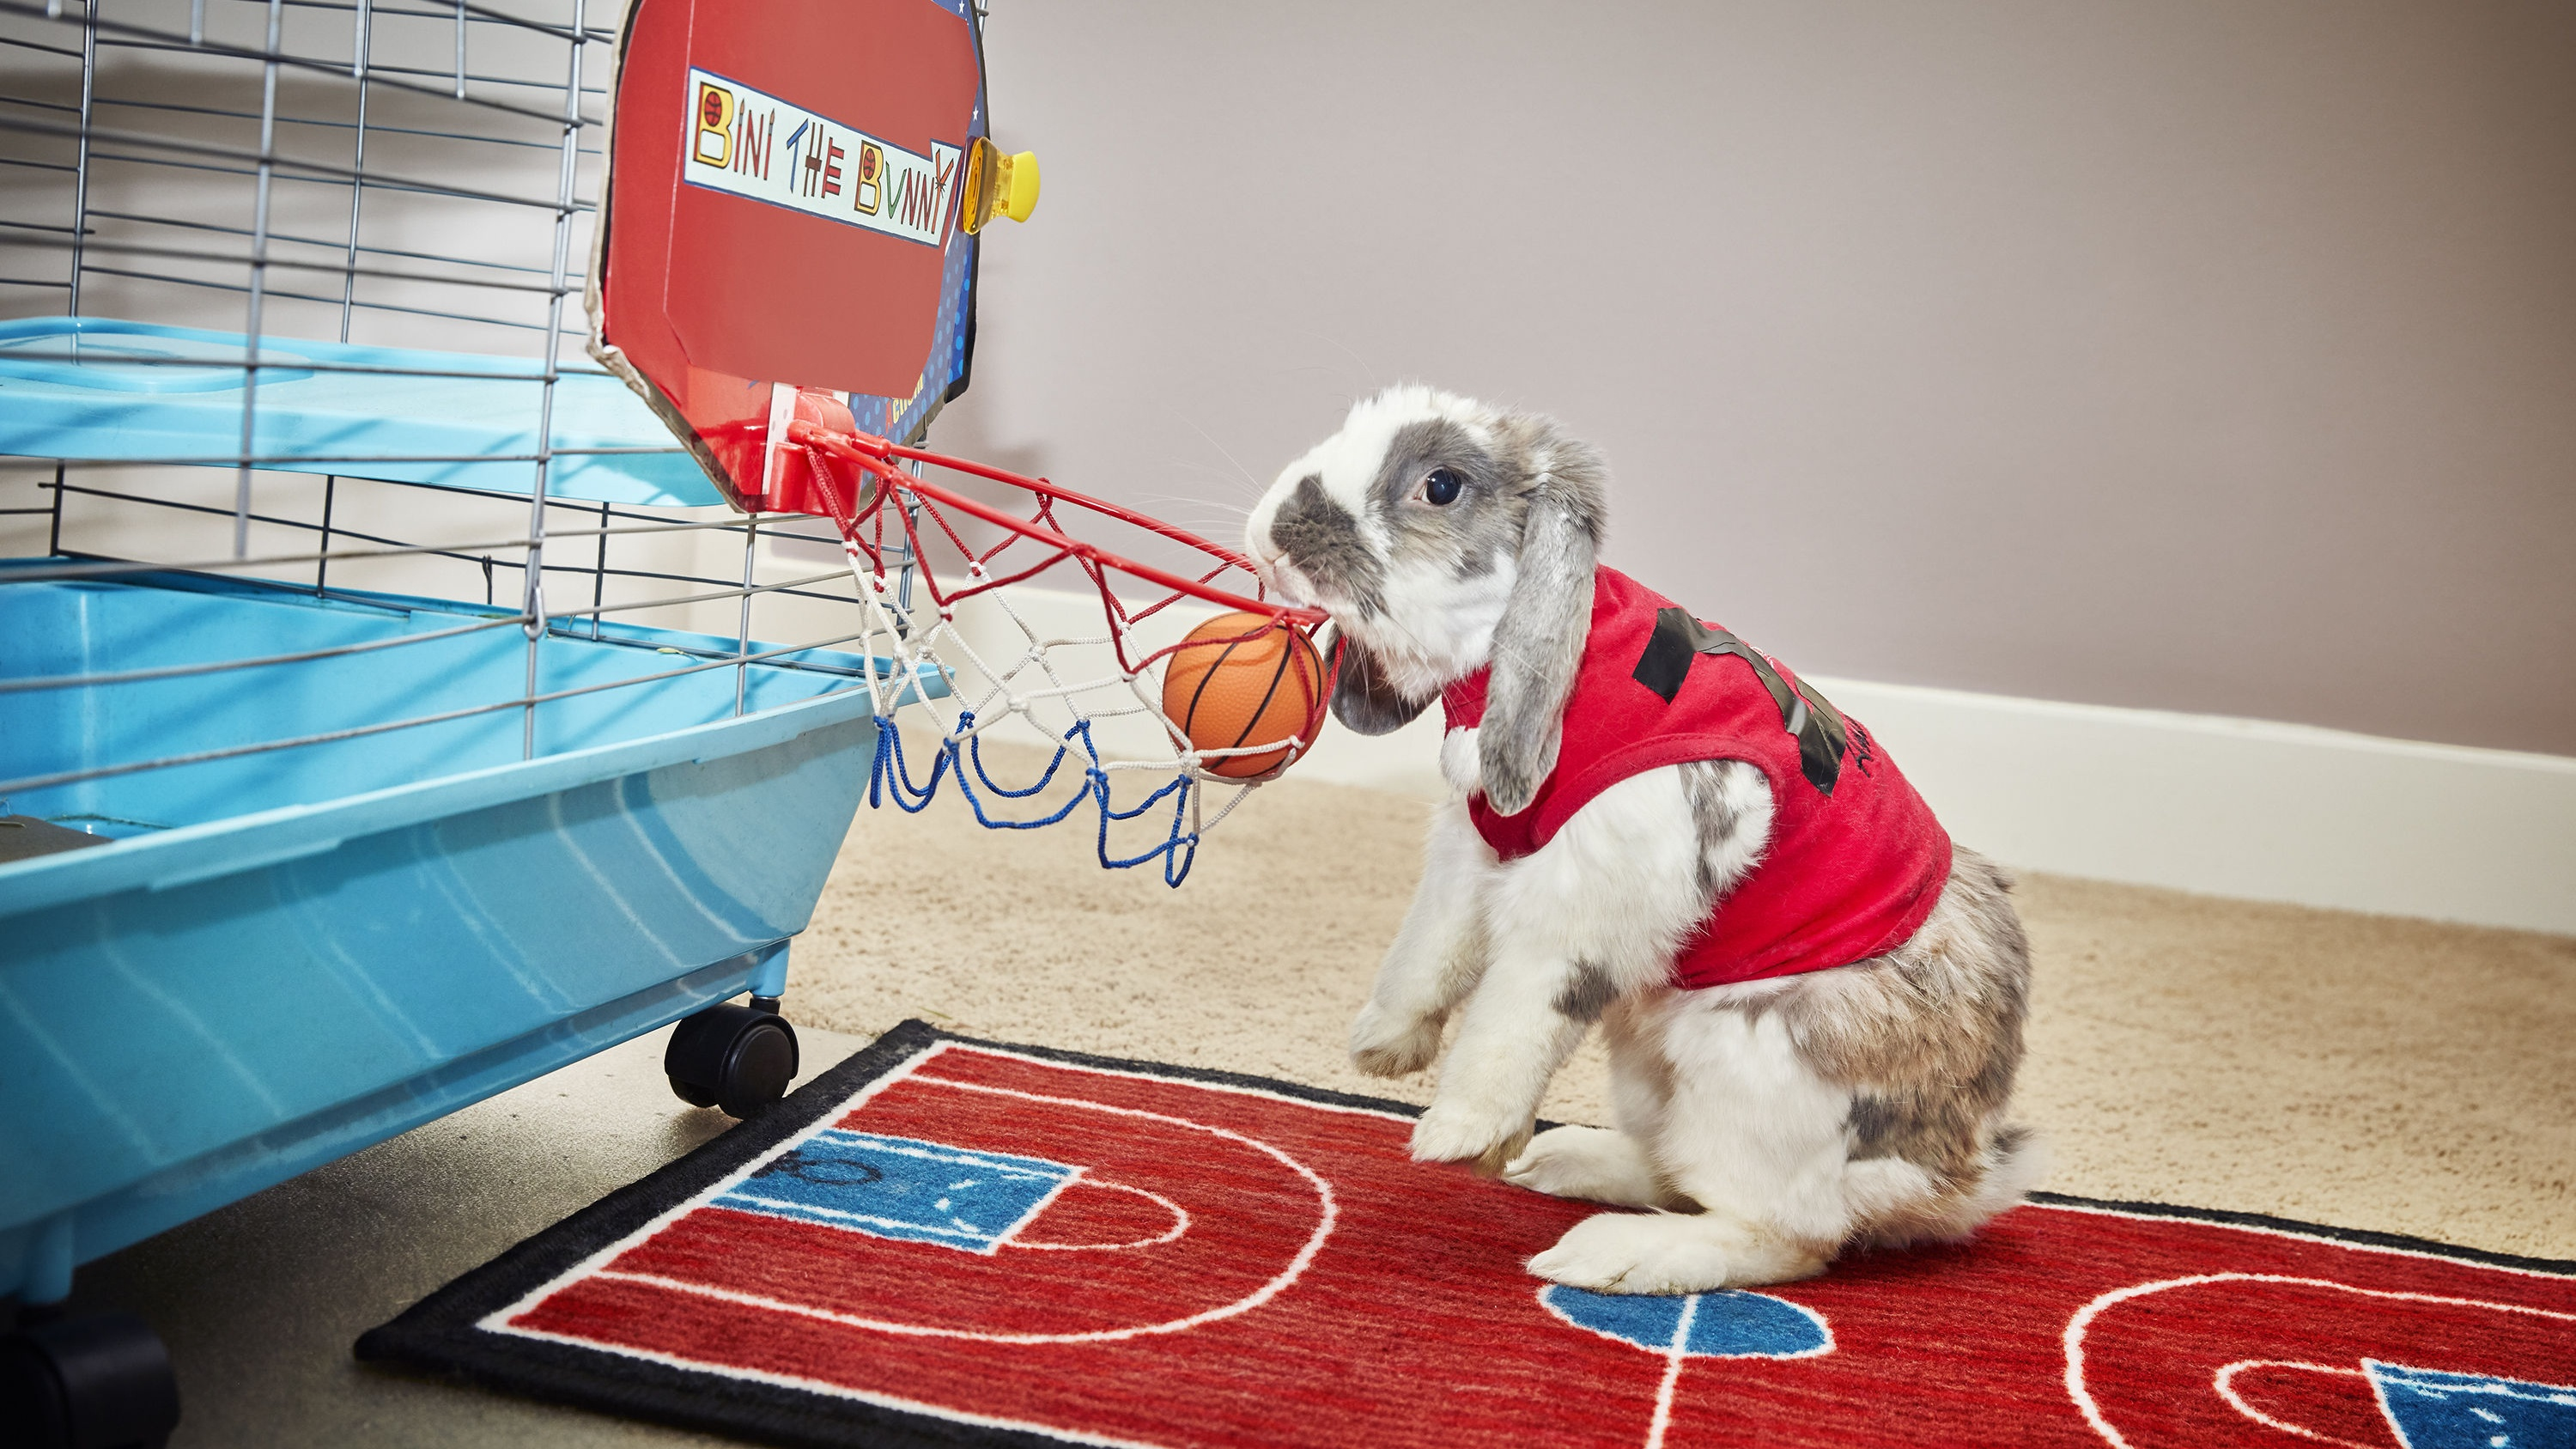 Bini The Bunny is a basketball legend